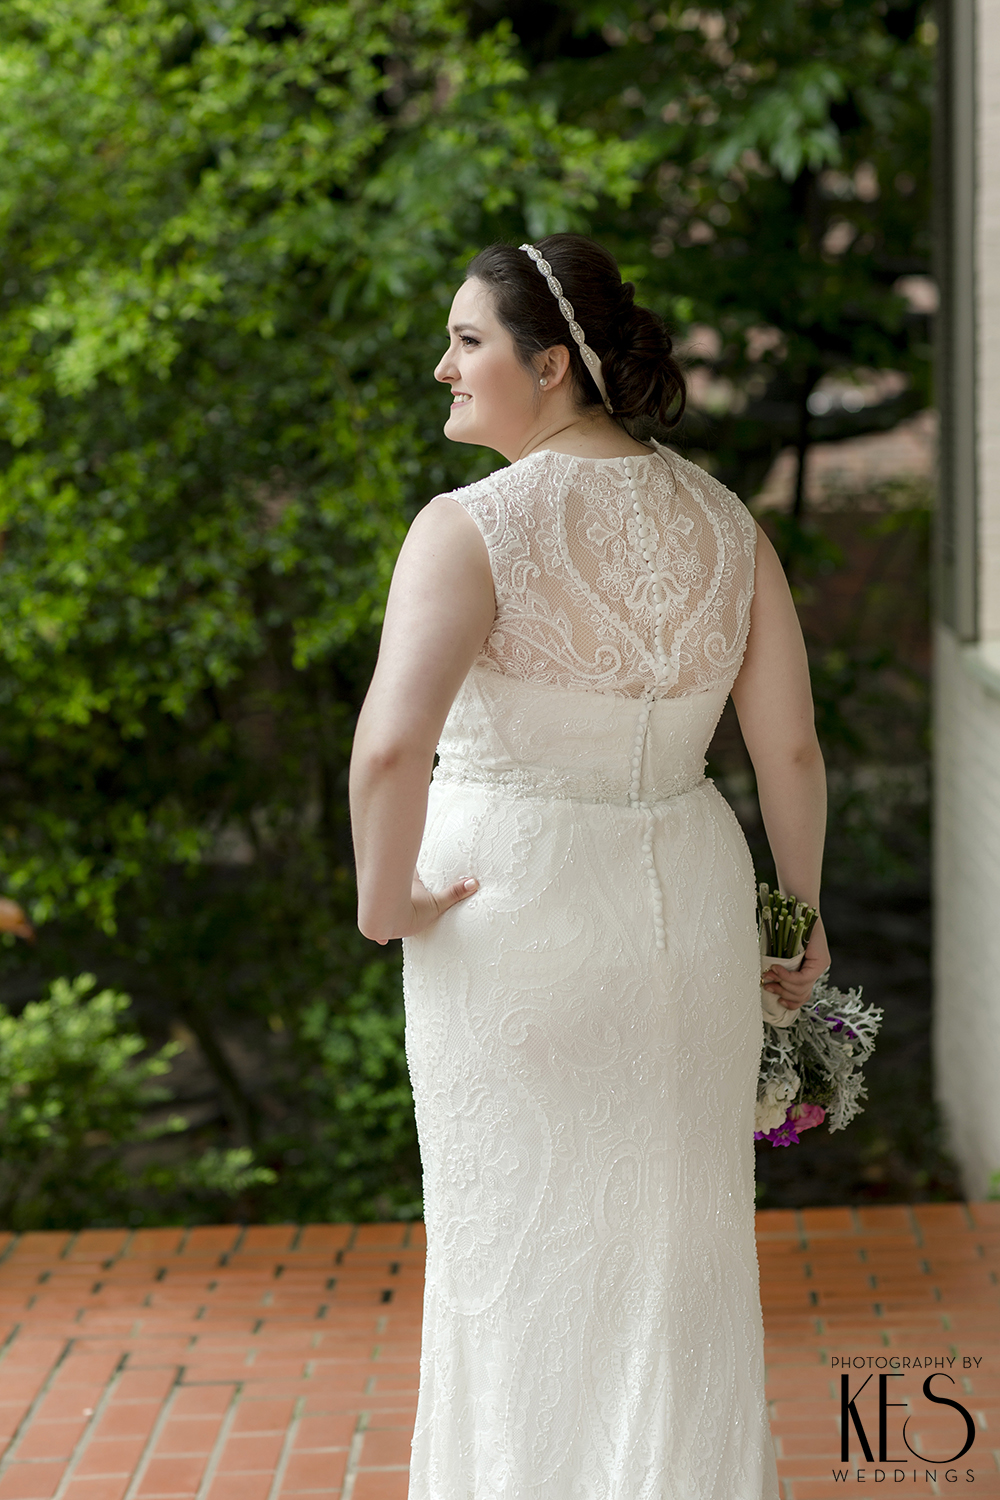 Trapnall_Hall_Bridals_KES_Weddings_9.JPG